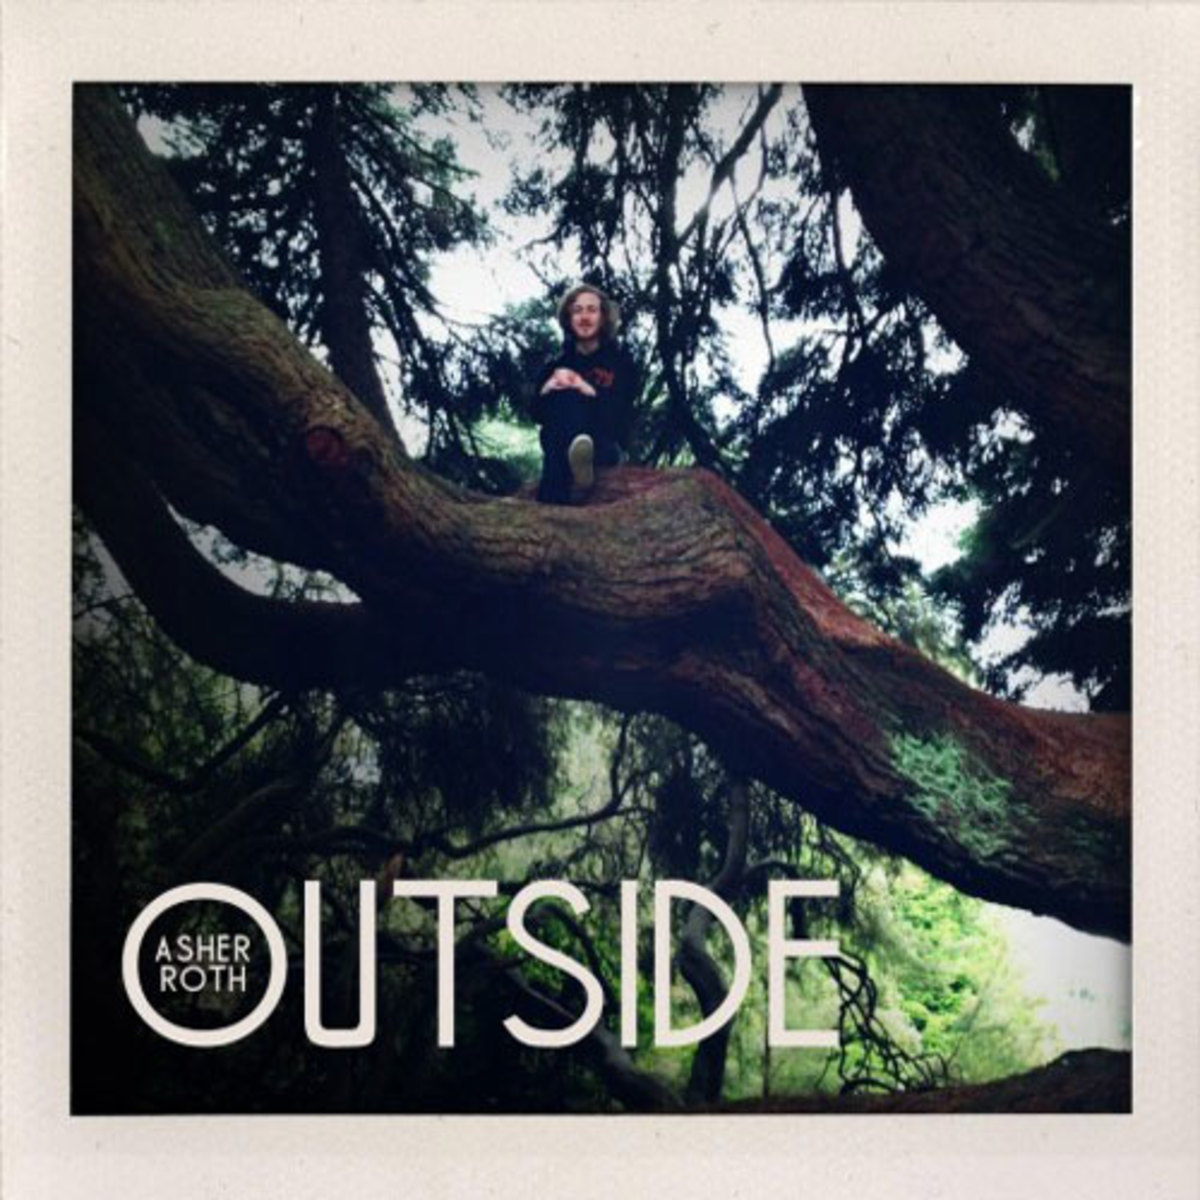 asherroth-outside.jpg